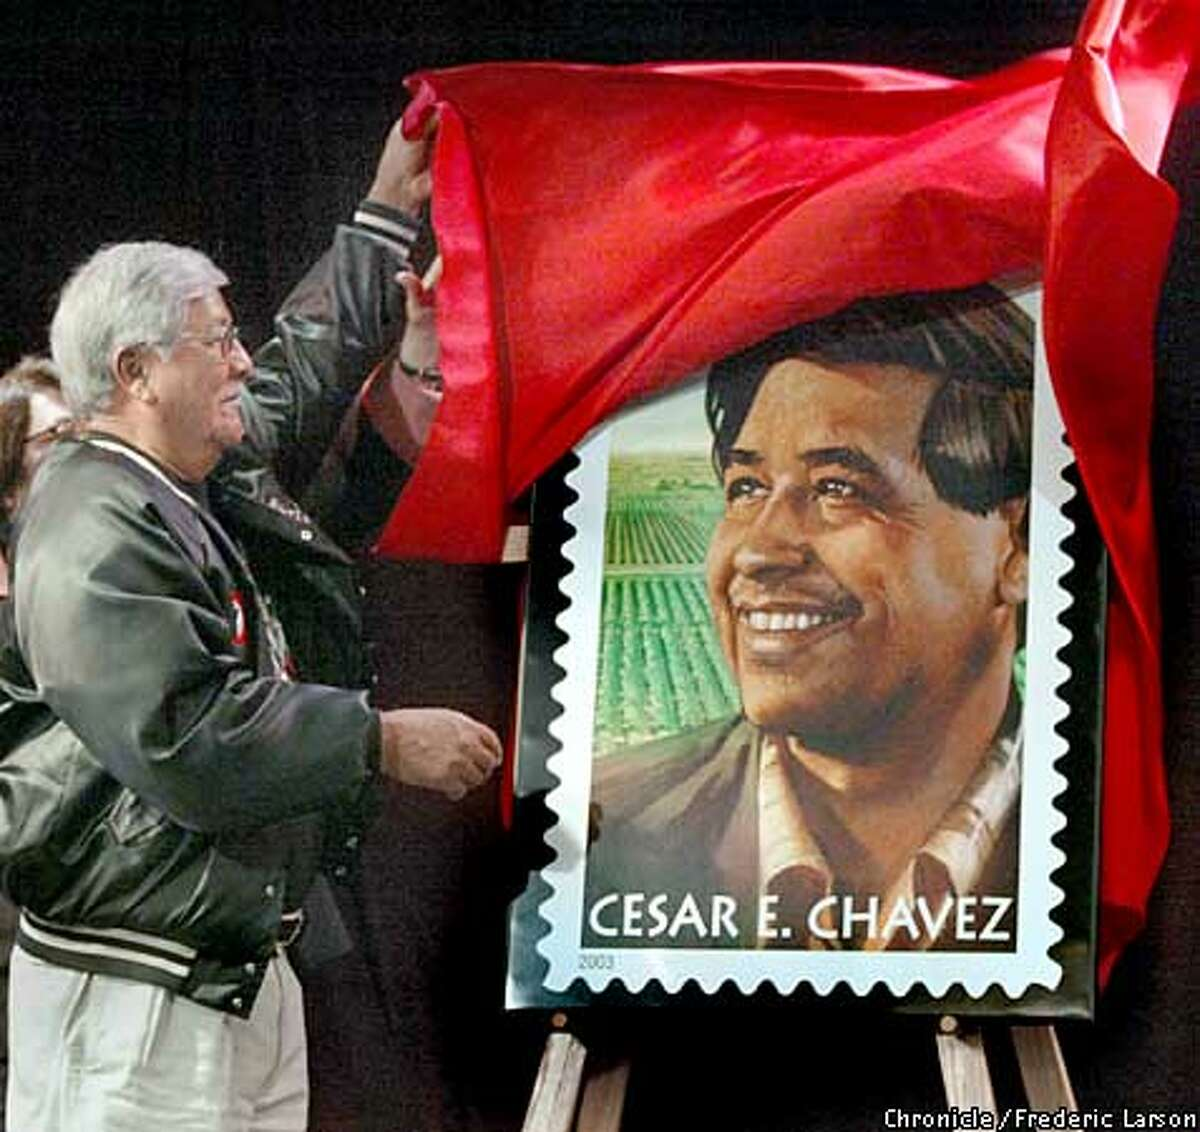 The San Francisco Post Office joins citizens of SF at the Mission Cultural Center for Latino Arts to honor the life's work and legacy of civil rights and farm labor leader Cesar E. Chavez with the unveiling by his brother Richard Chavez of the Cesar E. Chavez commemorative stamp. on 4/24/03 in San Francisco. FREDERIC LARSON / The Chronicle